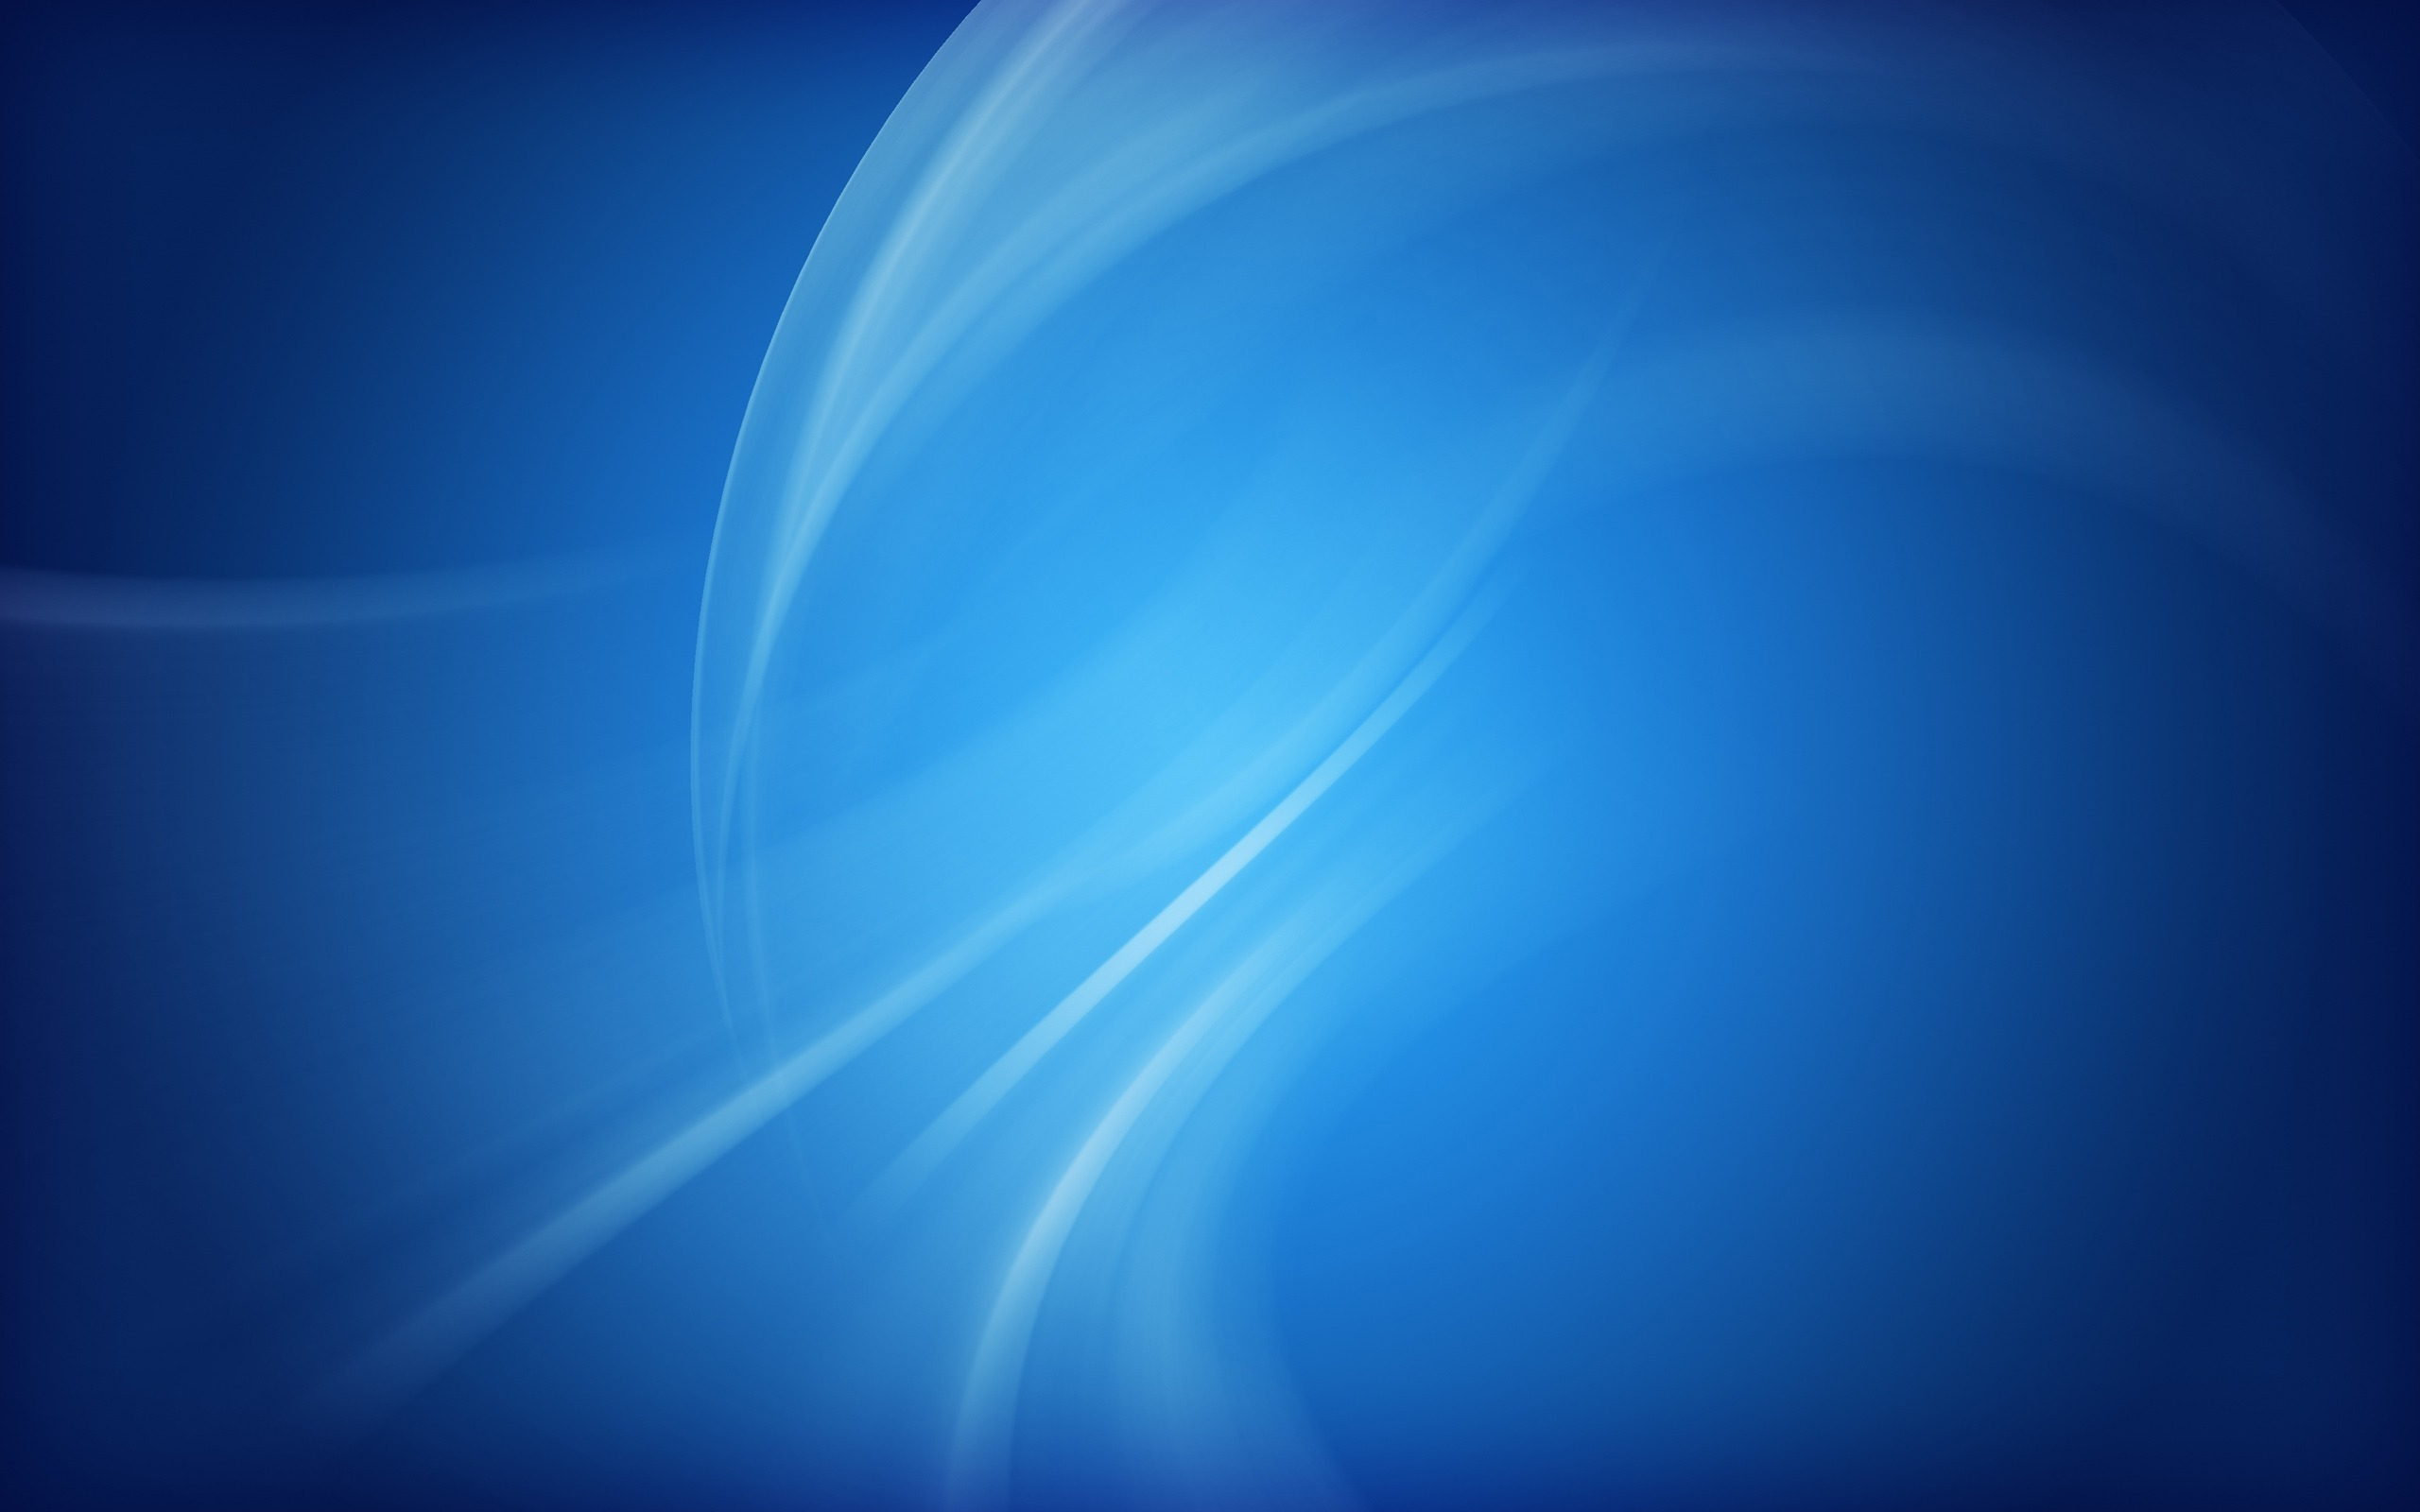 Blue-background-white-lines-texture-background-451.jpg